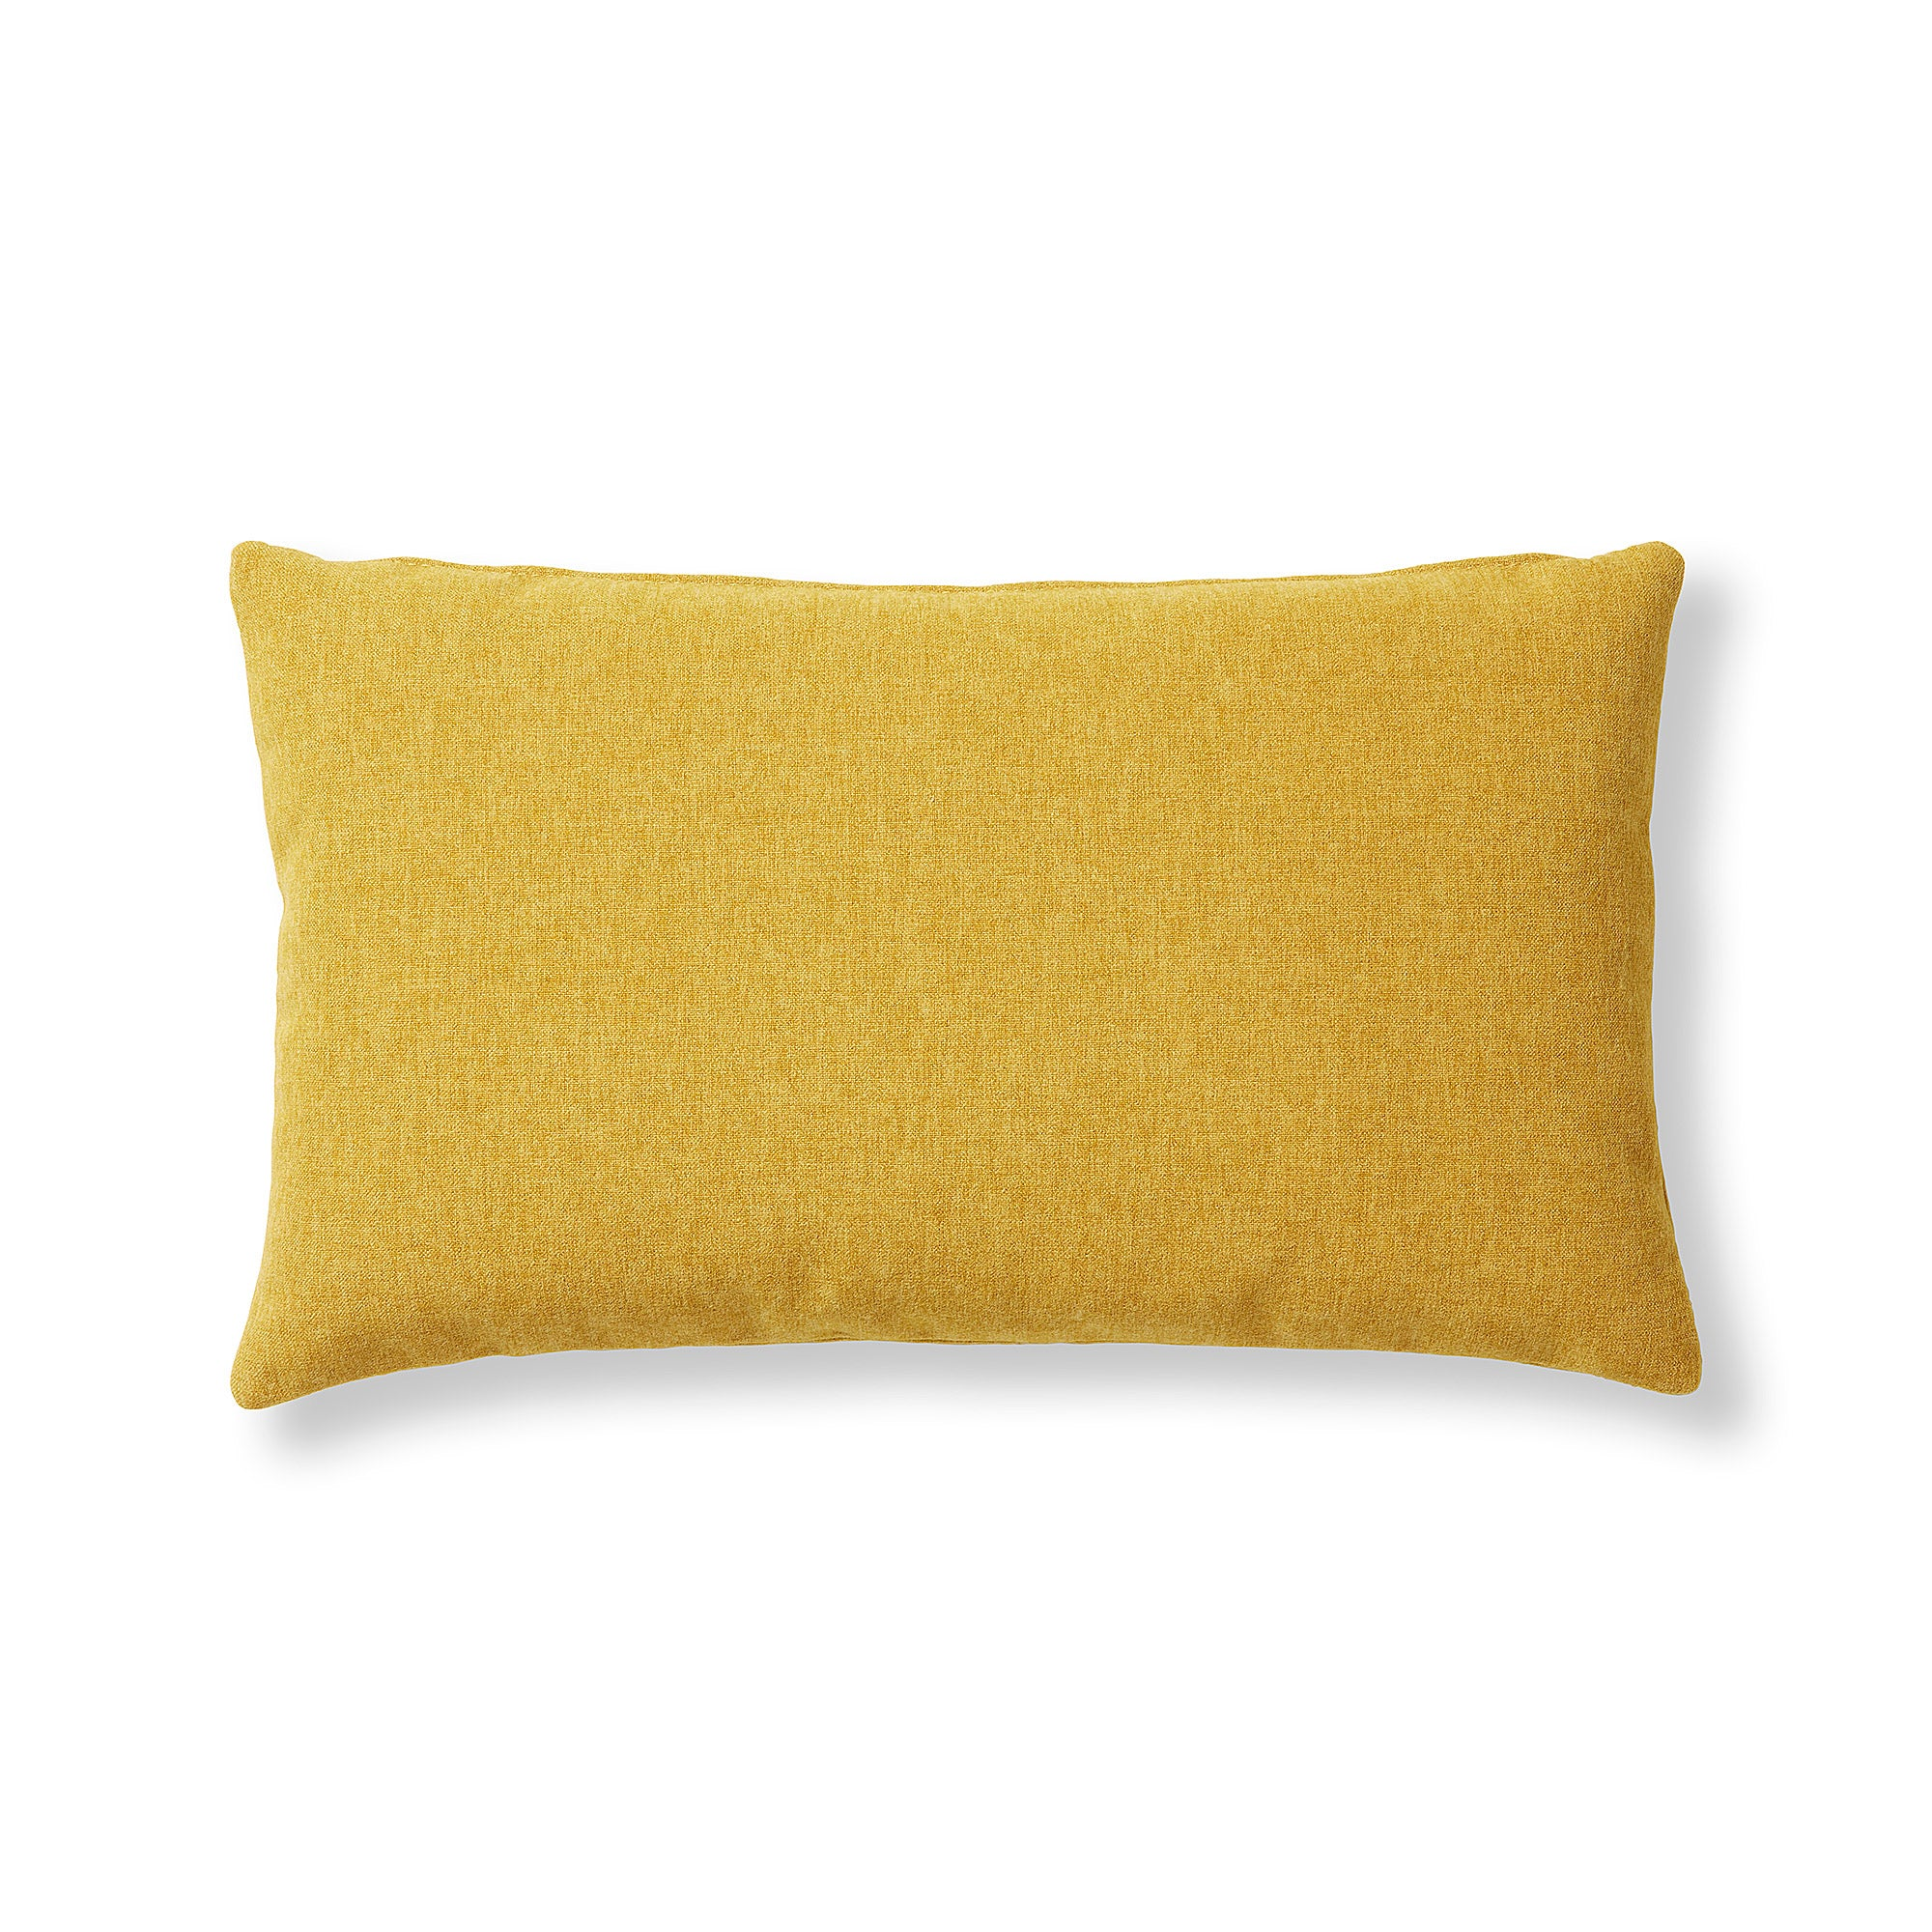 Minda Cushion 30x50 fabric mustard, Decor - Home-Buy Interiors